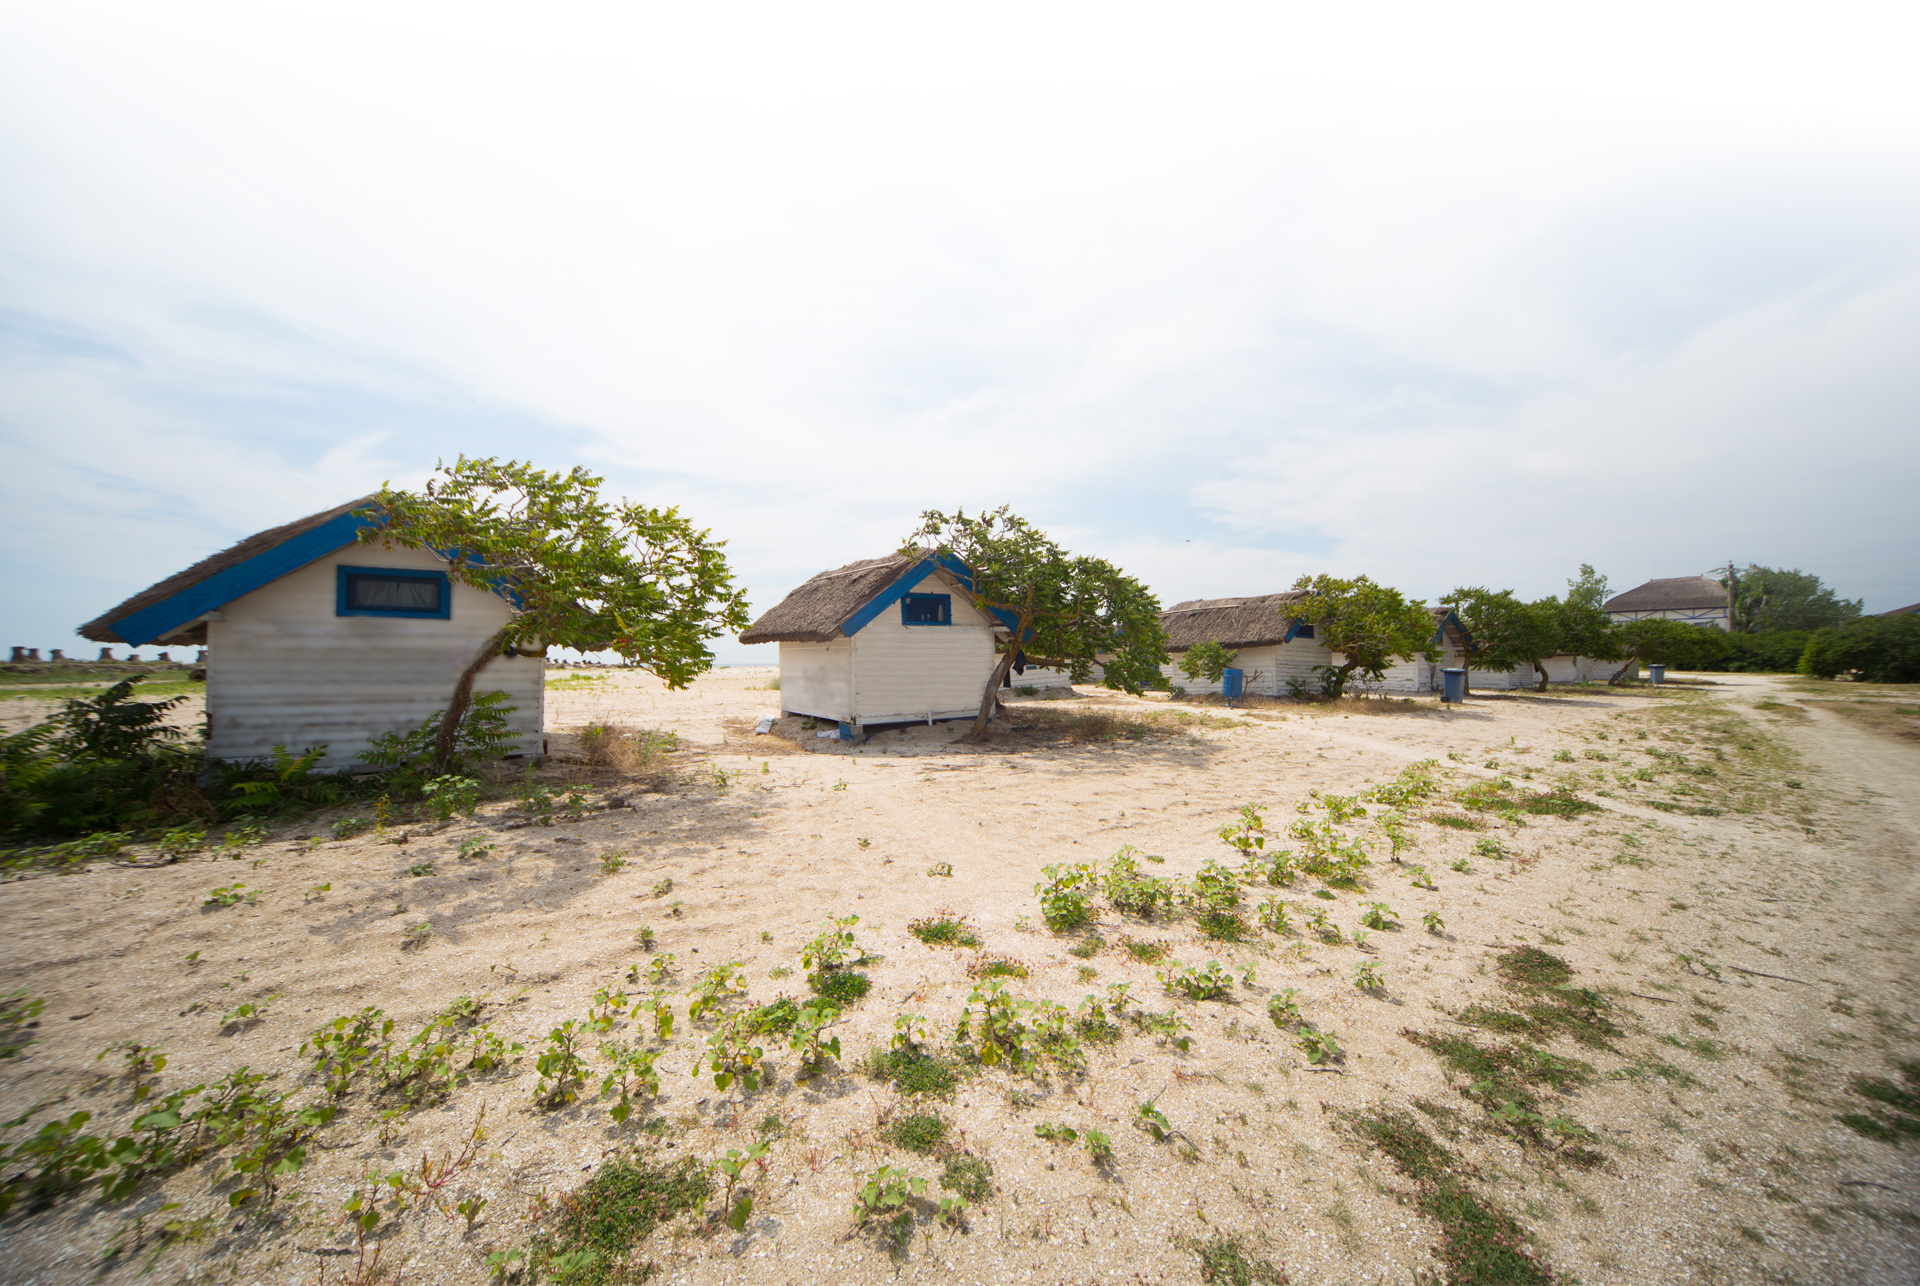 beachfront bungallows at gura portitei